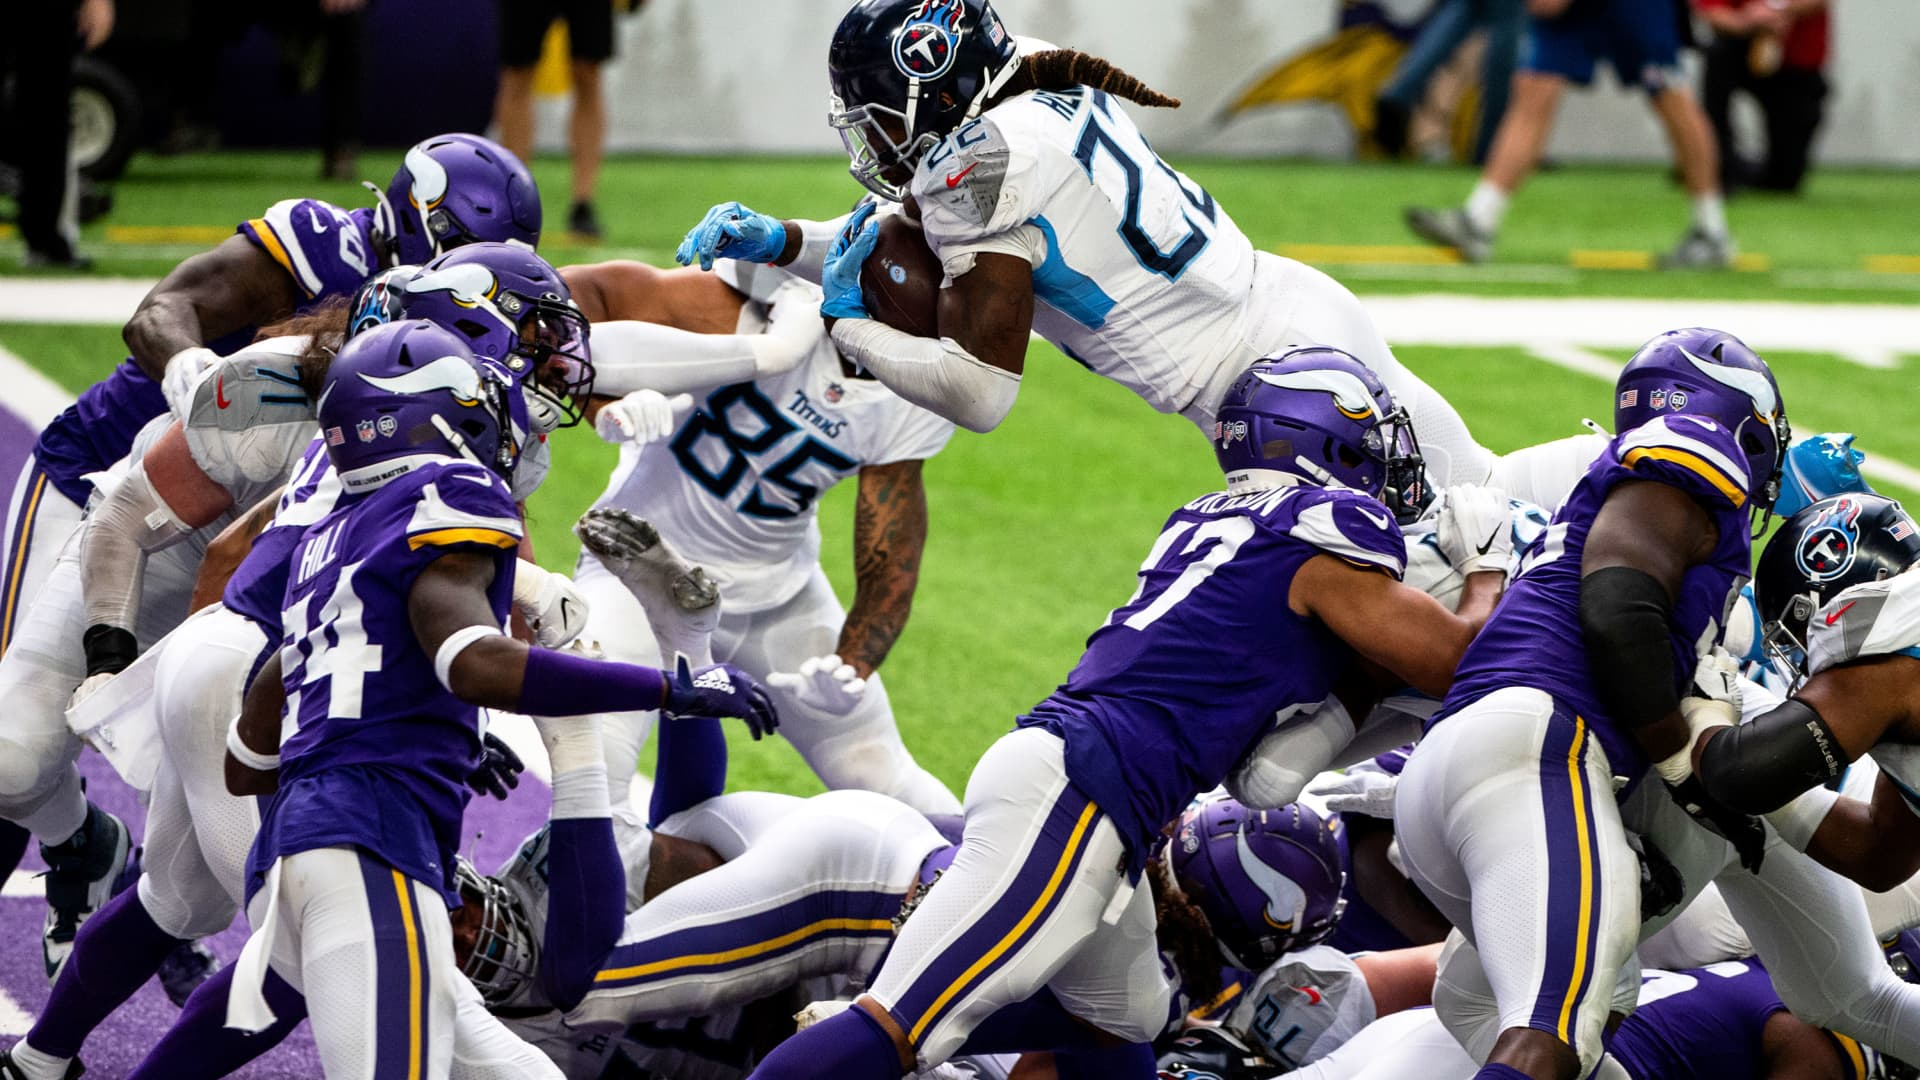 Derrick Henry #22 of the Tennessee Titans dives with the ball into the end zone for a touchdown in the third quarter of the game against the Minnesota Vikings at U.S. Bank Stadium on September 27, 2020 in Minneapolis, Minnesota.